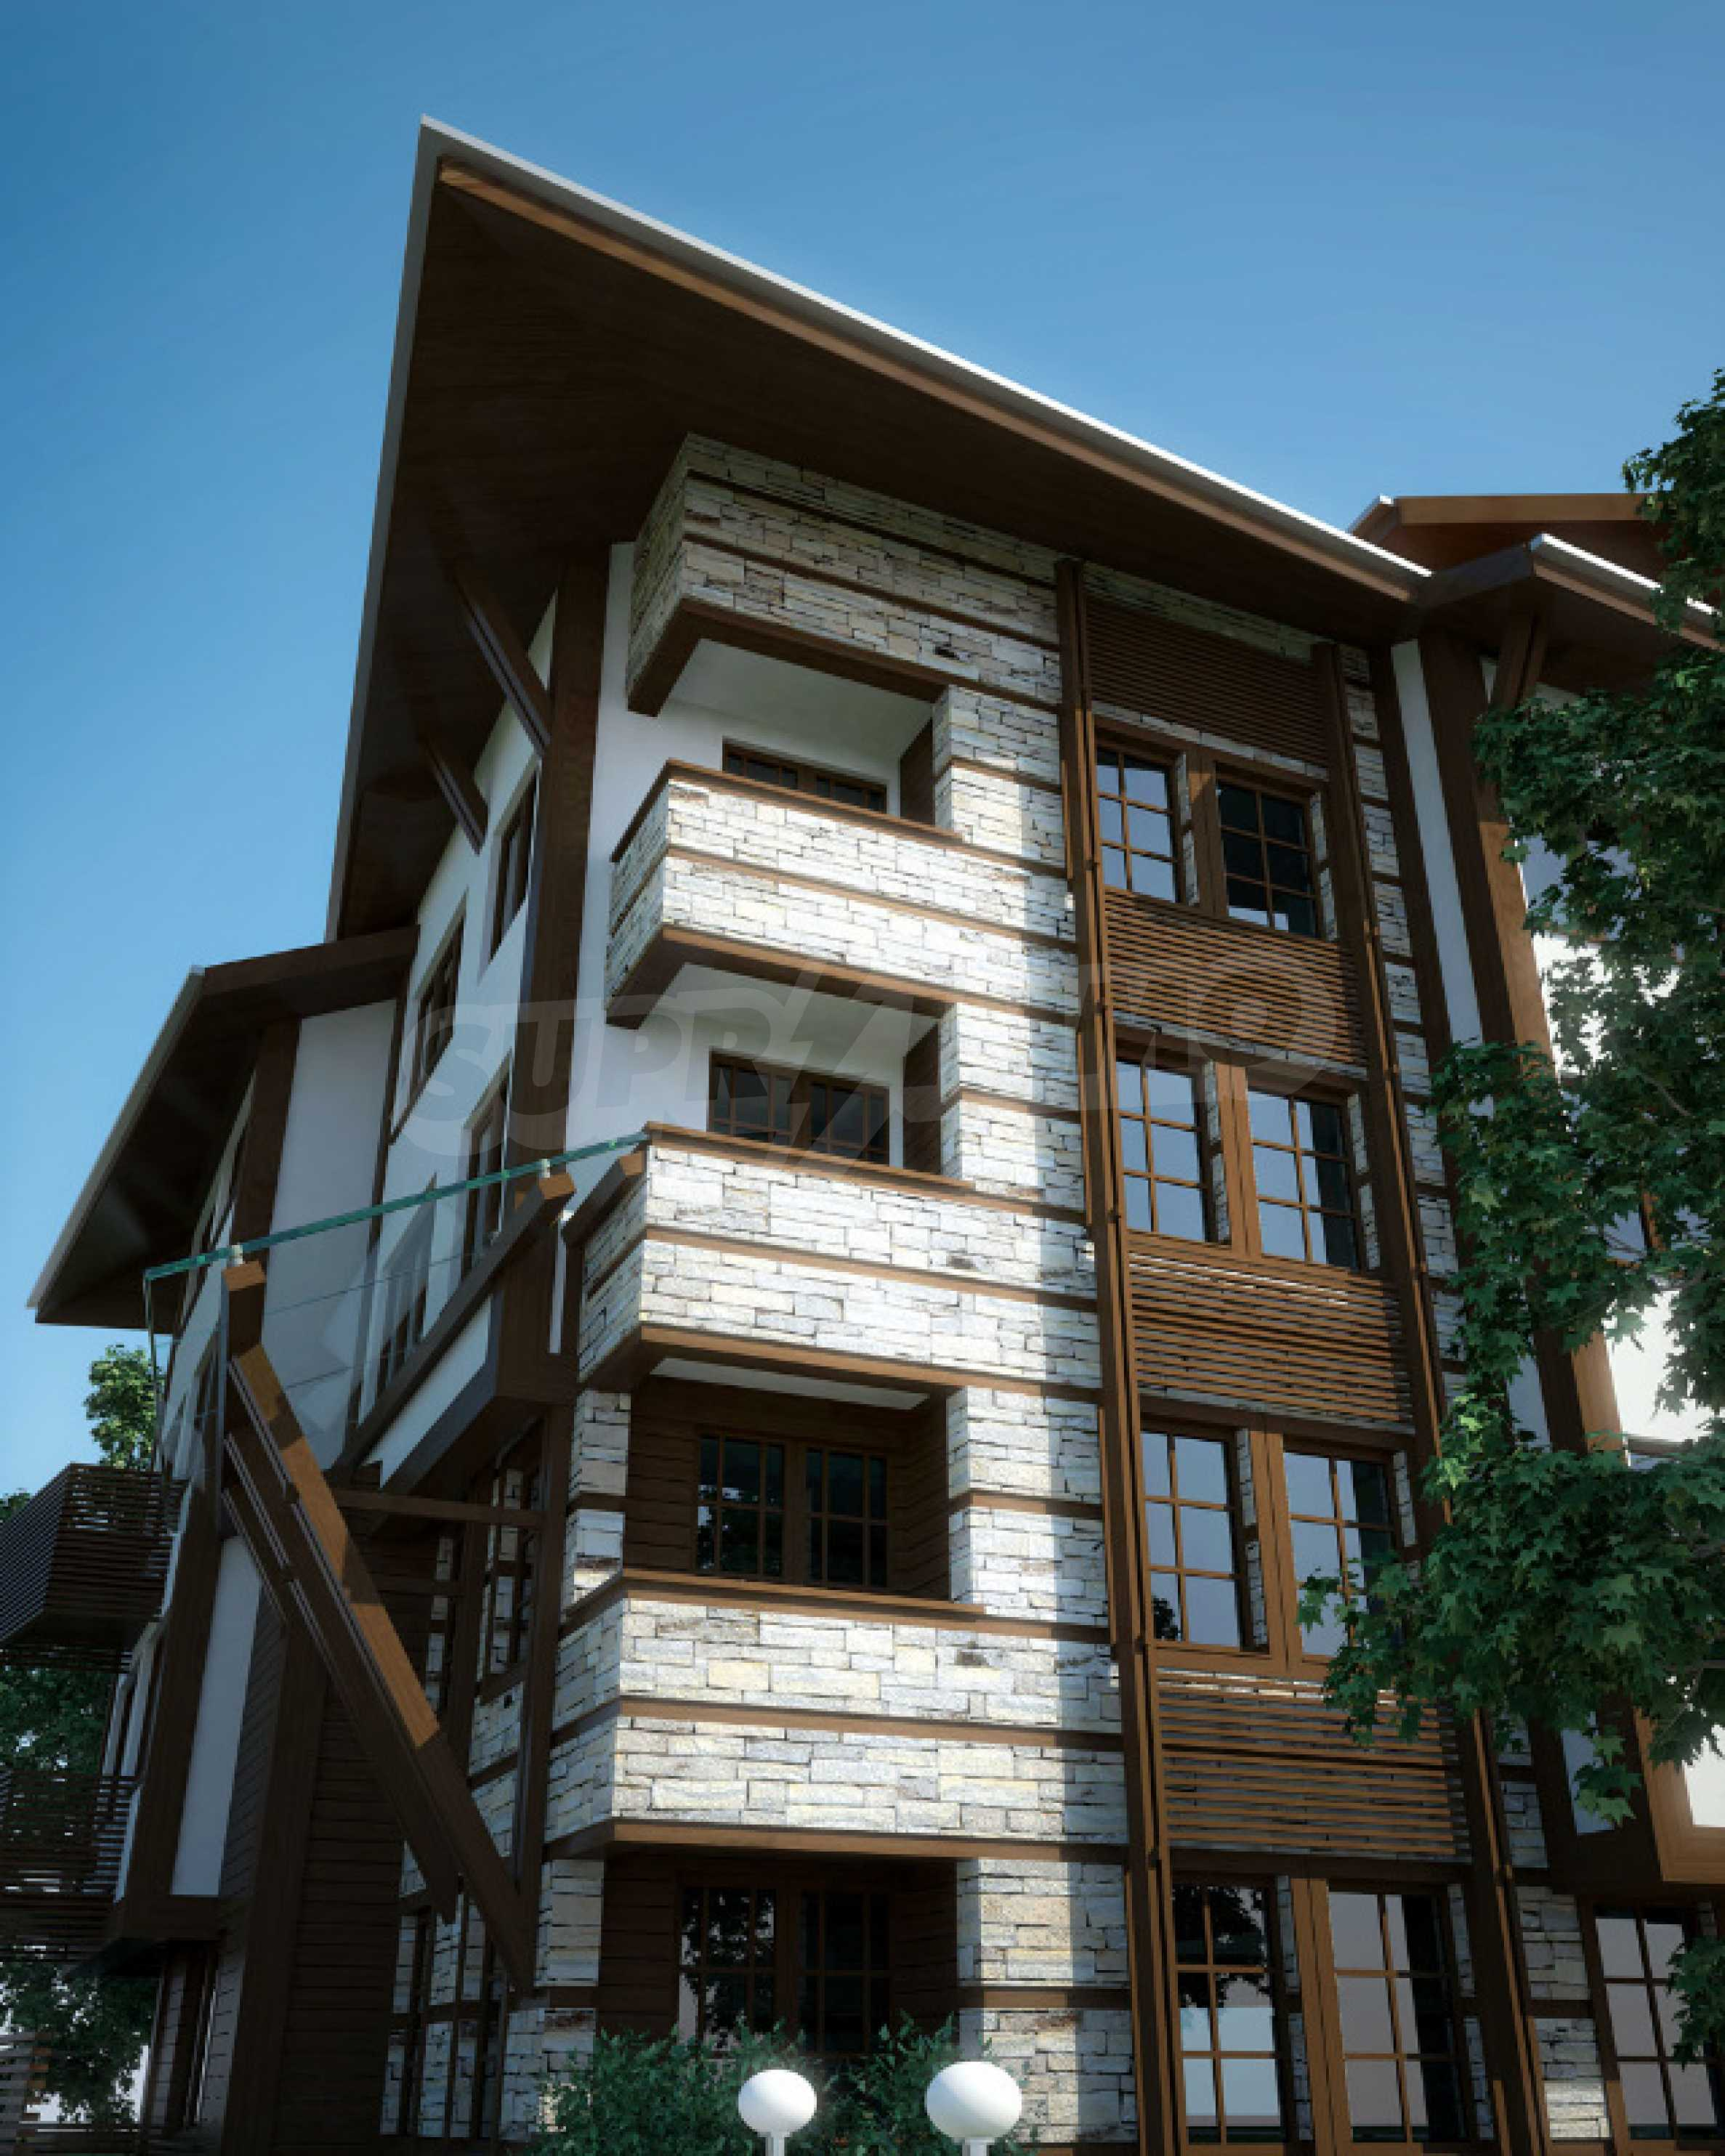 Chateau Blanc: Probably the best investment opportunity in Bansko... 6